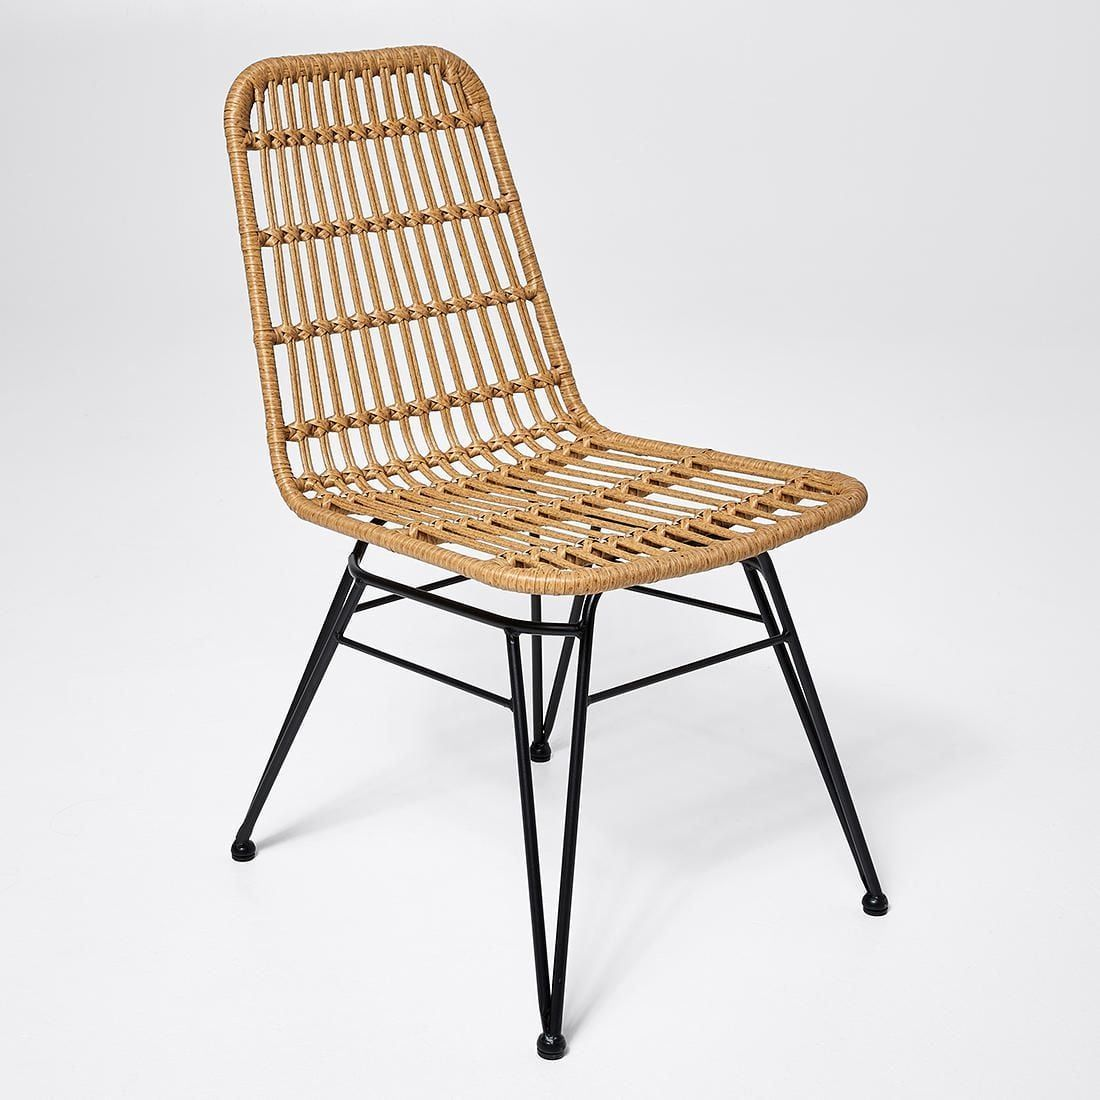 Woven Rattan Dining Chair Target Australia Australia Chair Dining Rattan Target Woven In 2020 Rattan Dining Chairs Target Dining Chairs Woven Dining Chairs